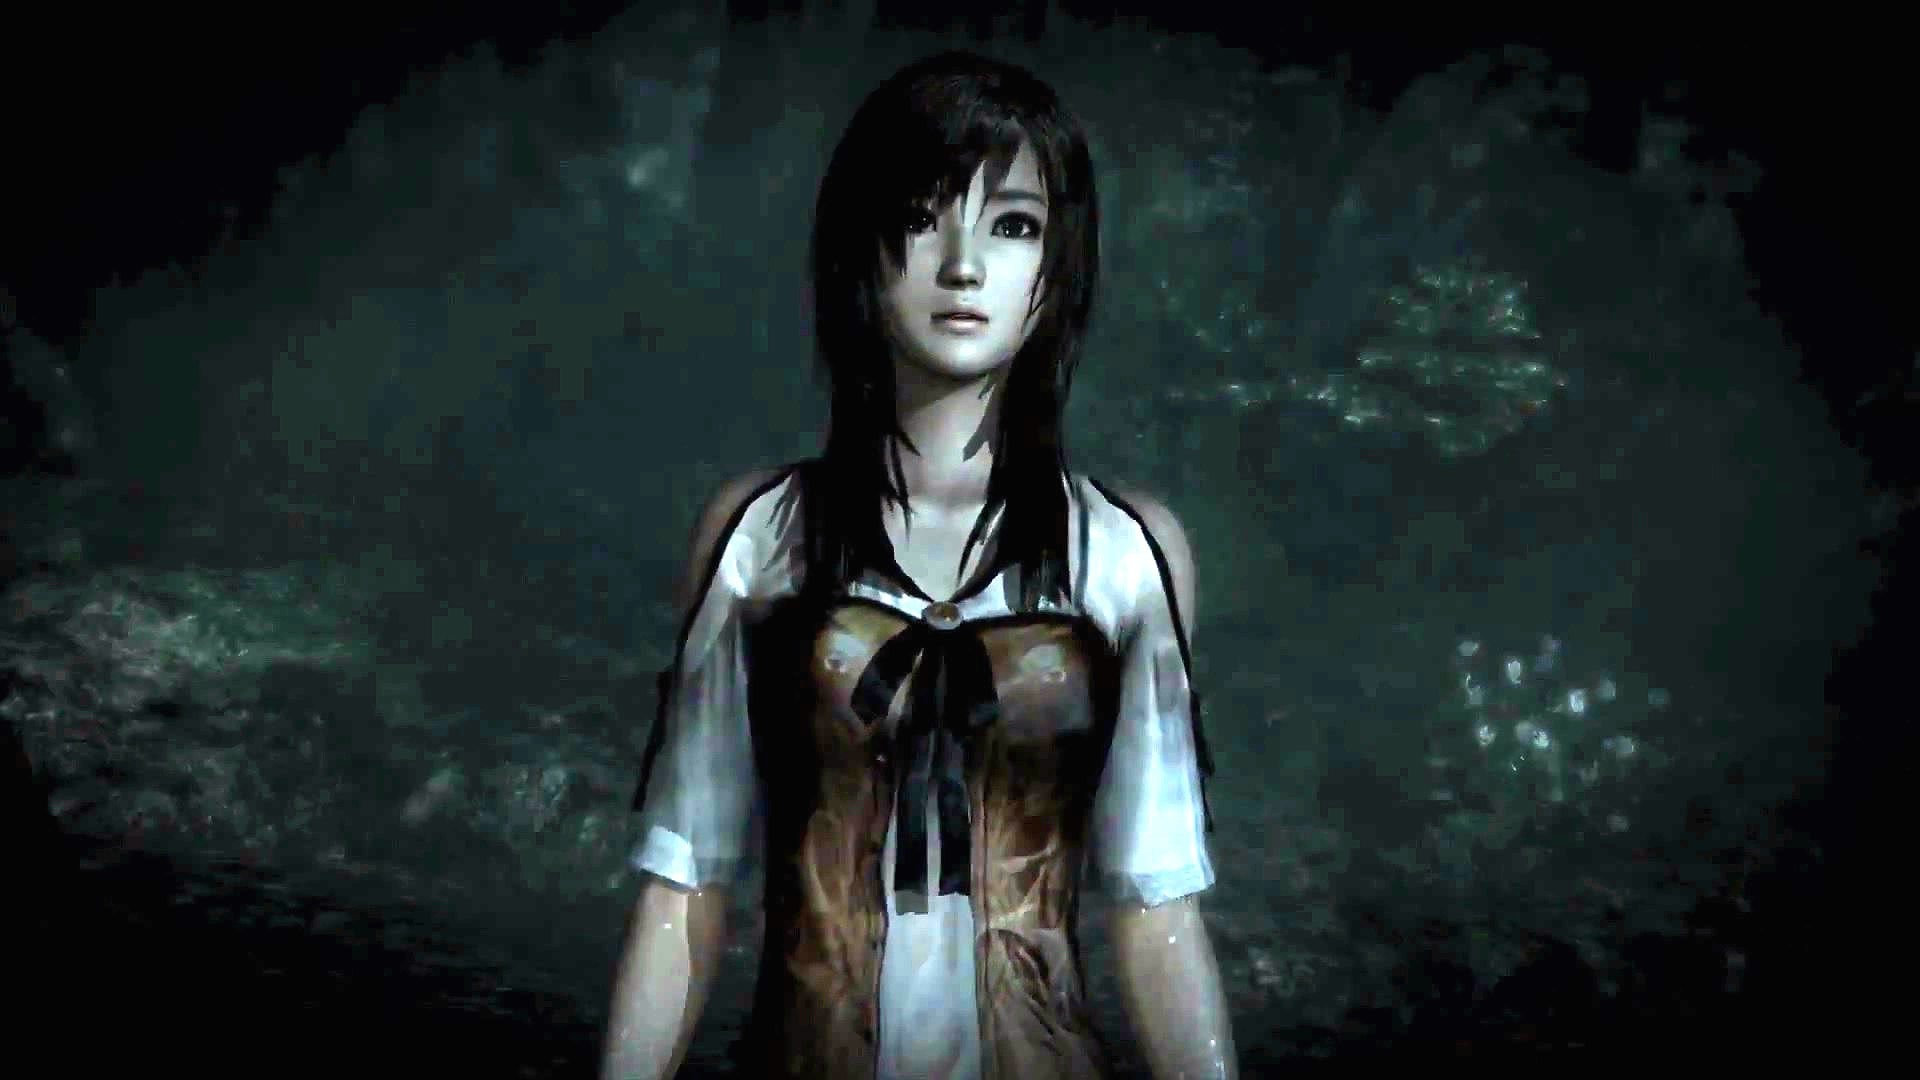 809204 Cool Fatal Frame 5 Wallpaper 1920x1080 Hd 1080p